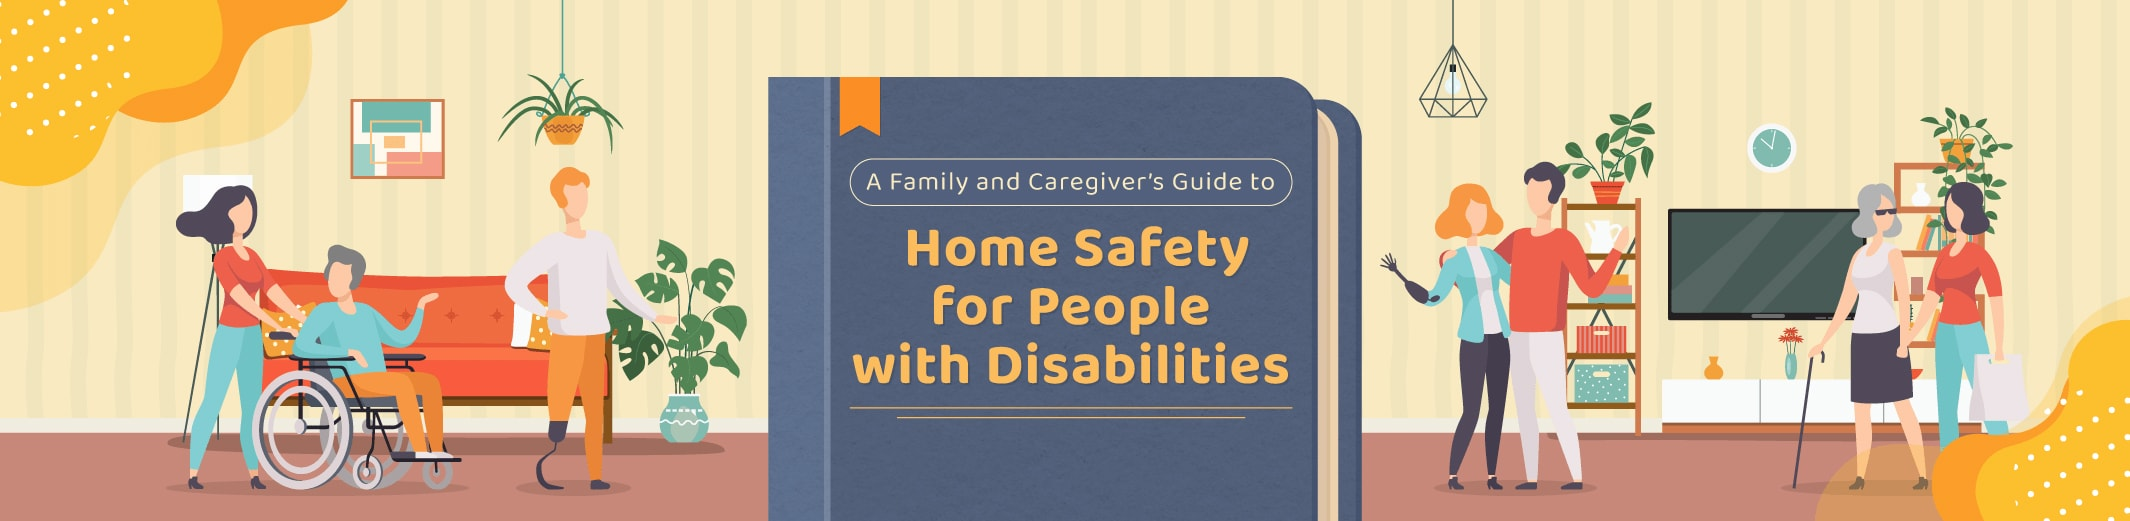 A Family and Caregivers Guide to Home Safety for the Disabled